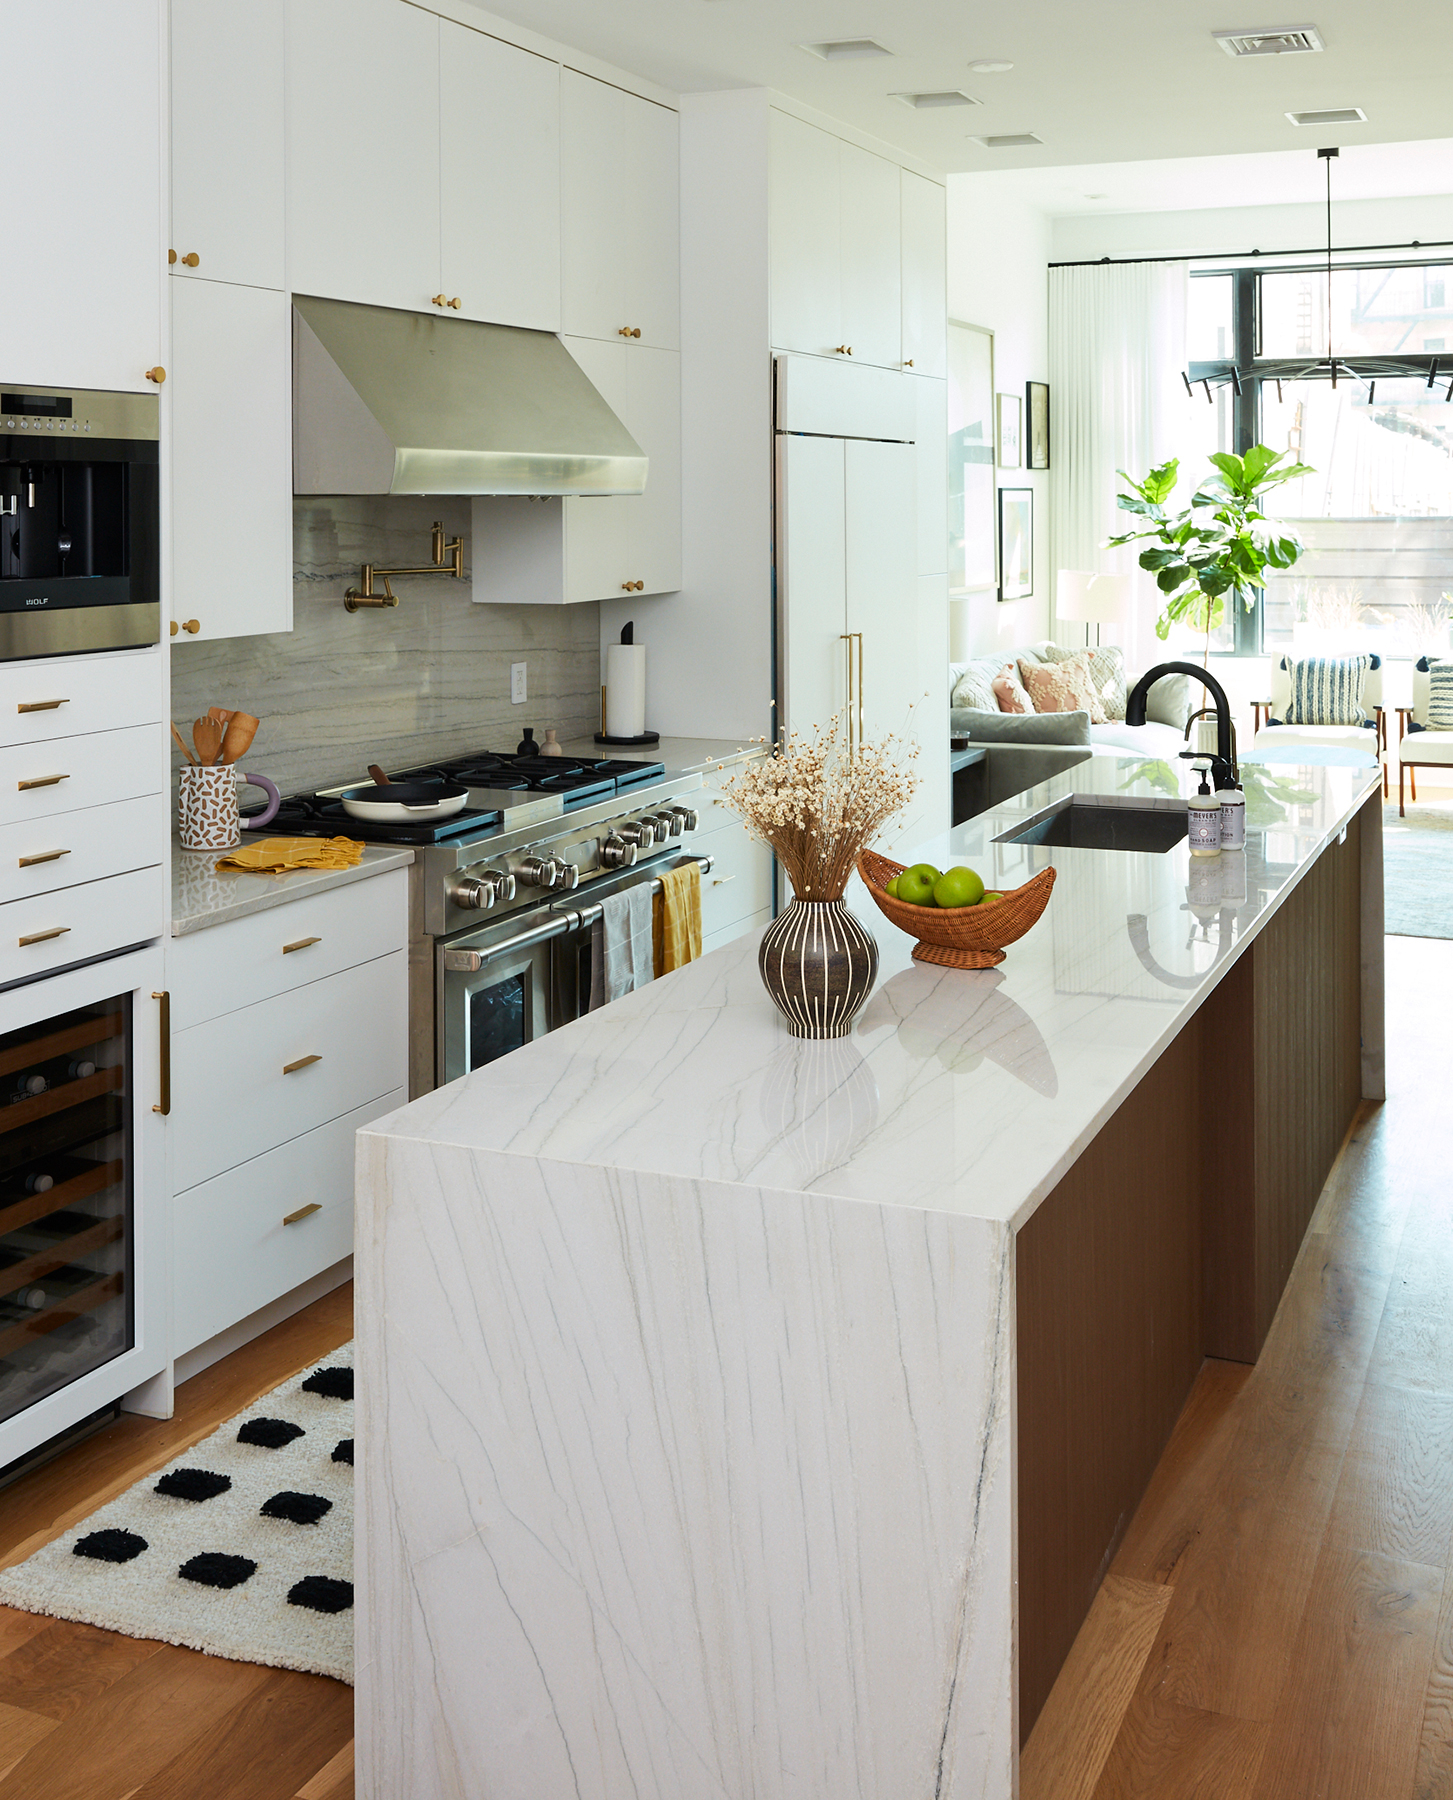 2019 Real Simple Home: Kitchen